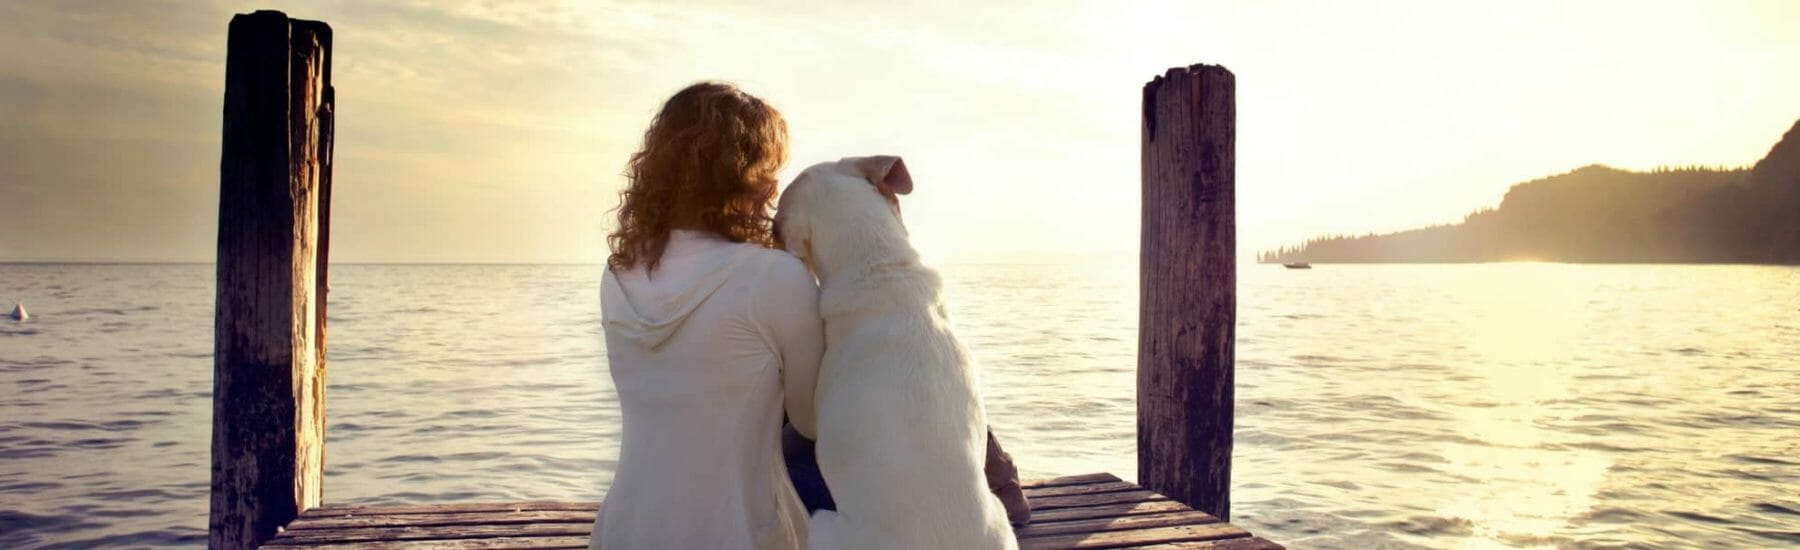 Dog and owner looking out onto lake